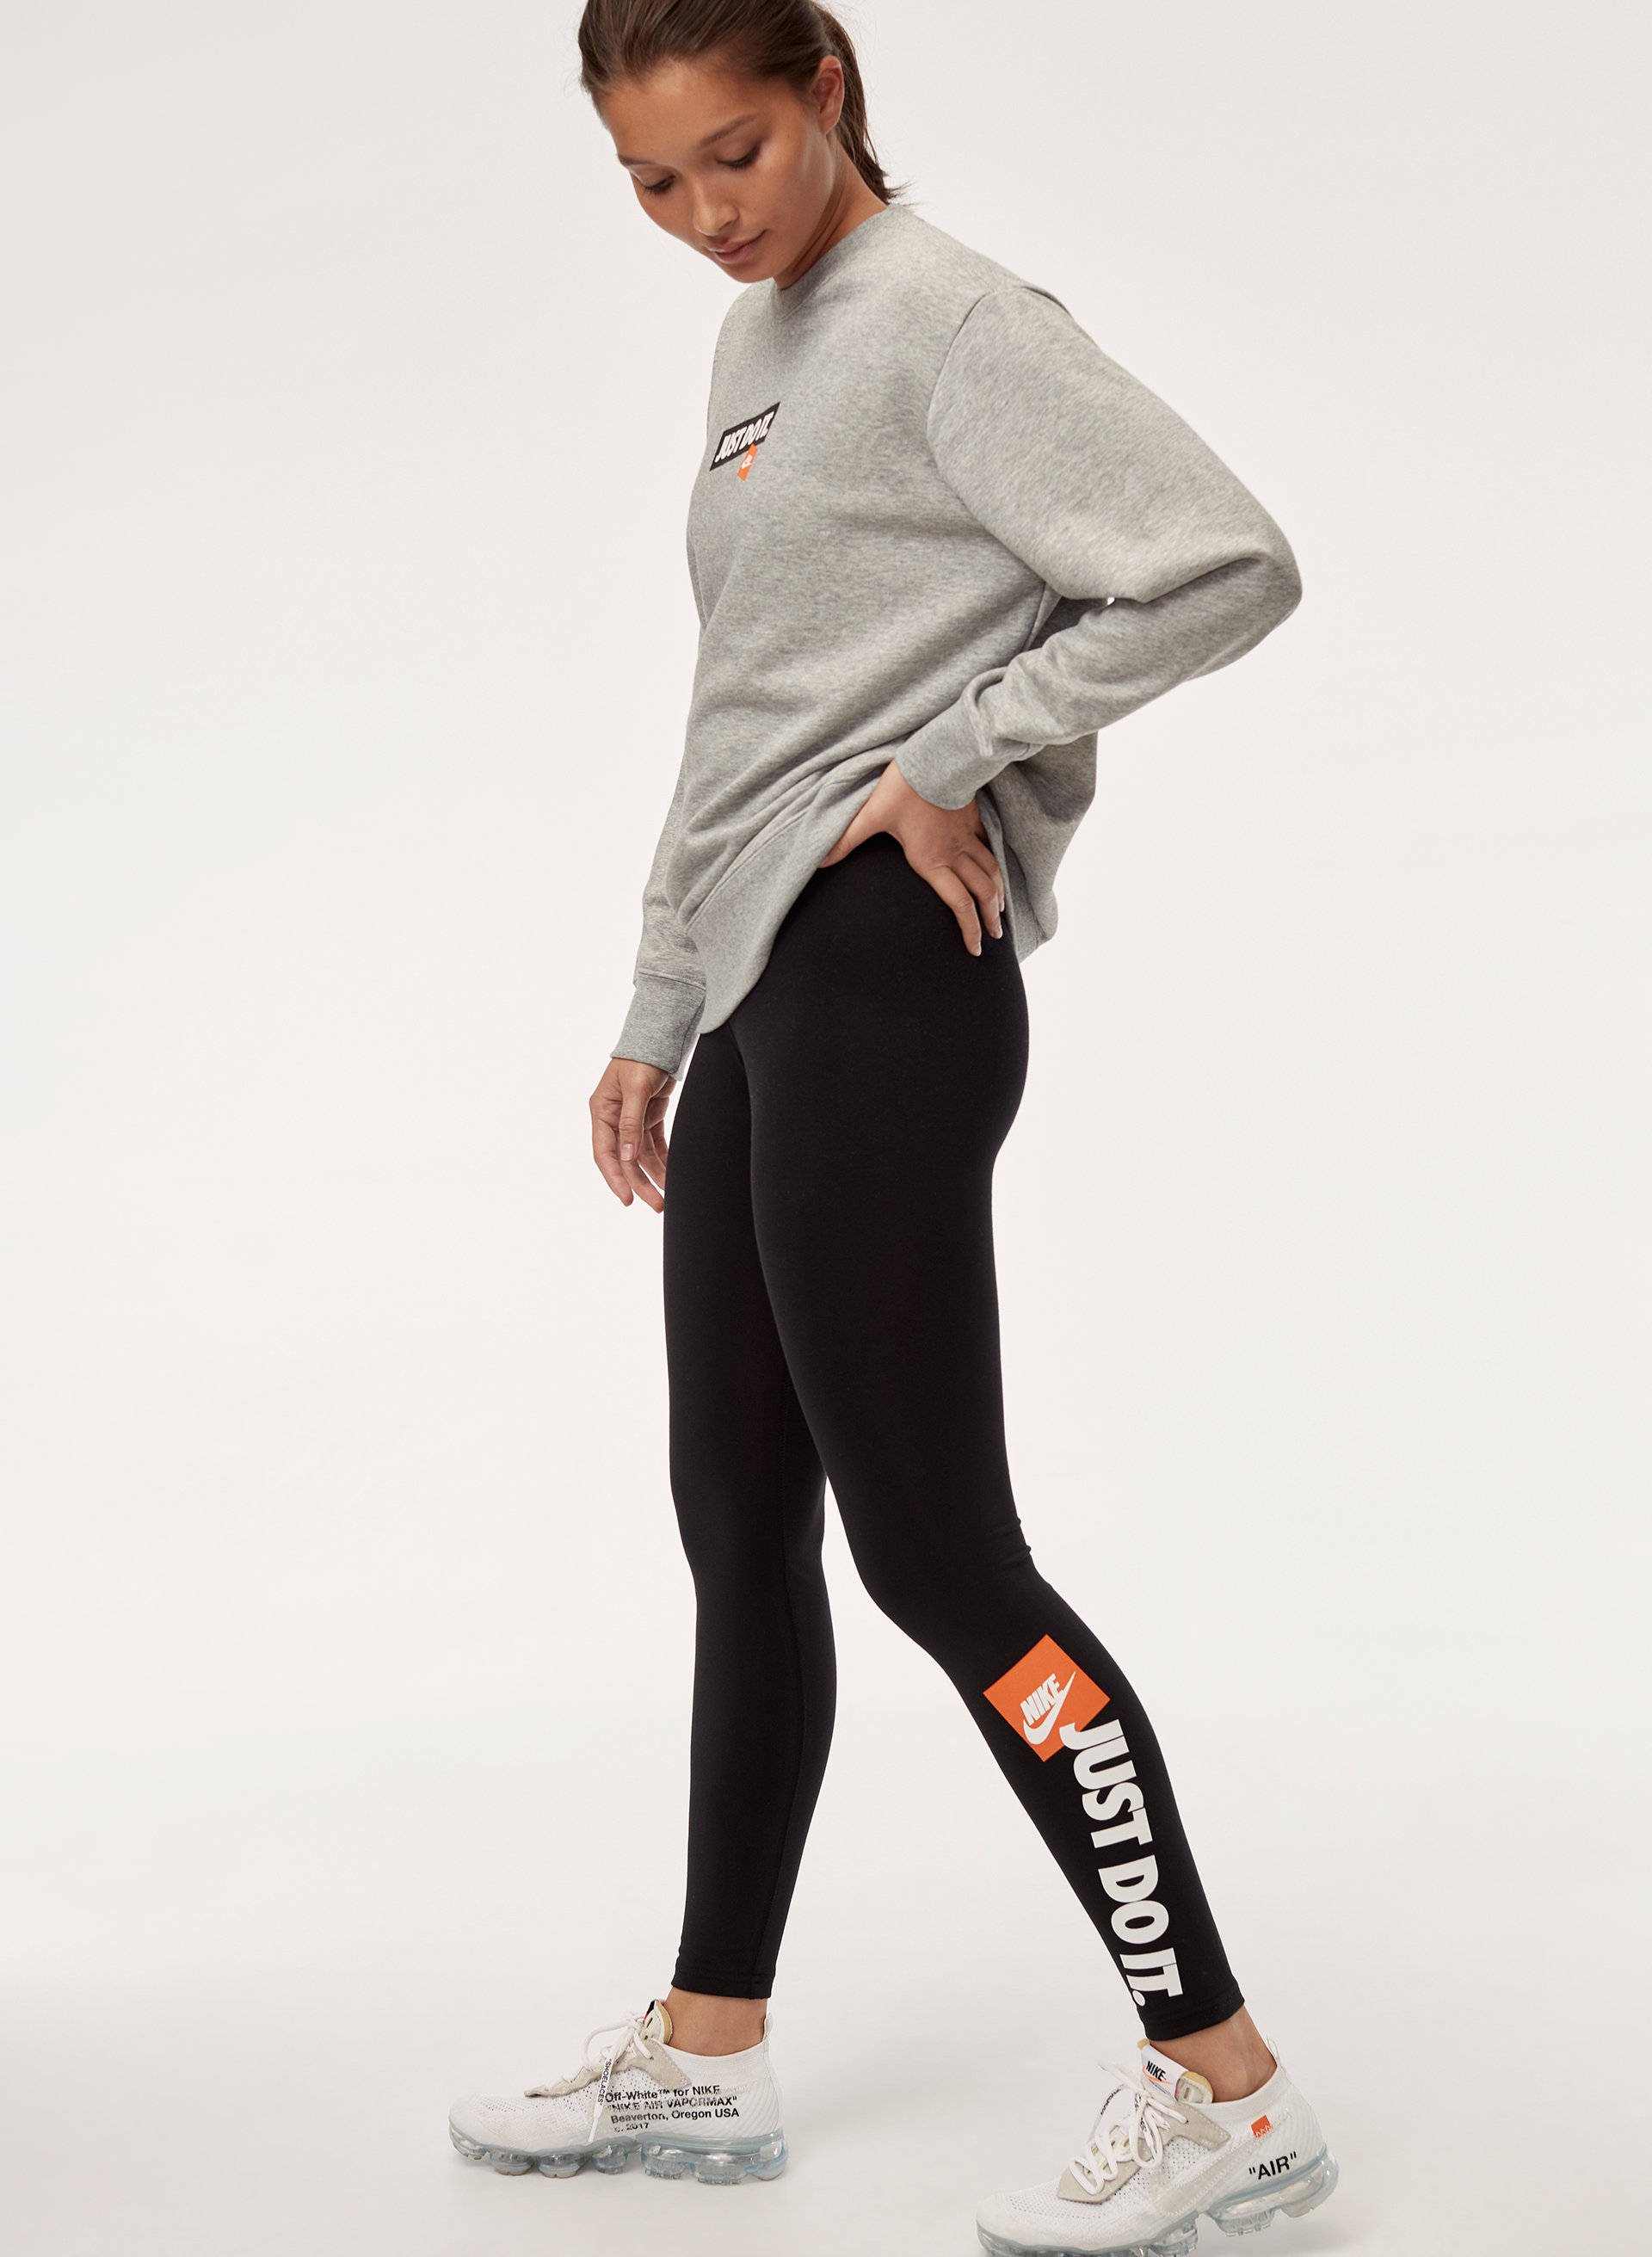 huge selection of 9da6e 04955 JUST DO IT LEGGING - High-waisted legging